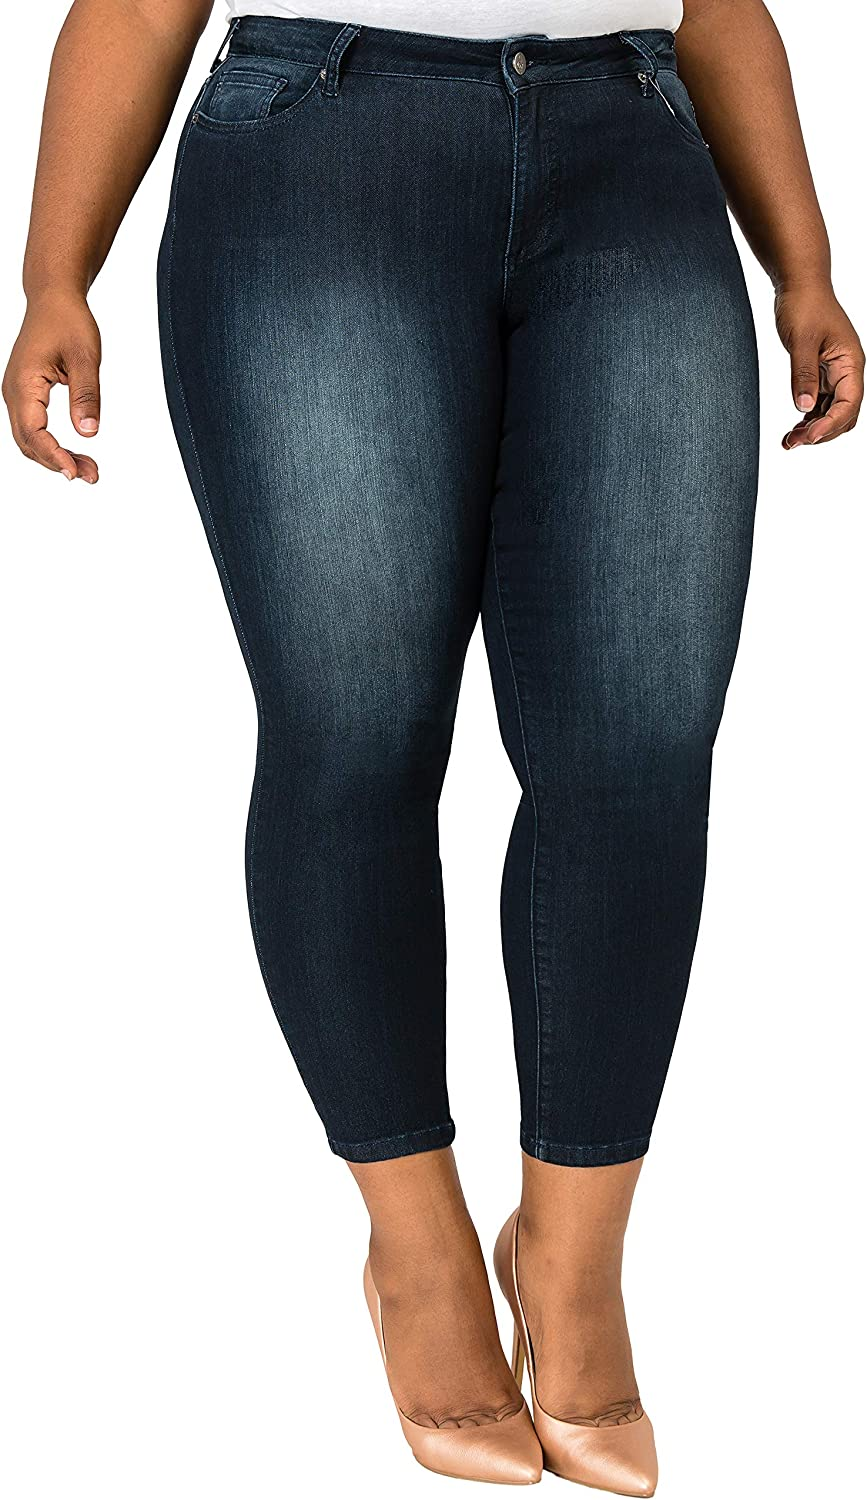 Poetic Justice Plus Size Women's Curvy Fit Indigo Rinsed Cropped Skinny Jeans